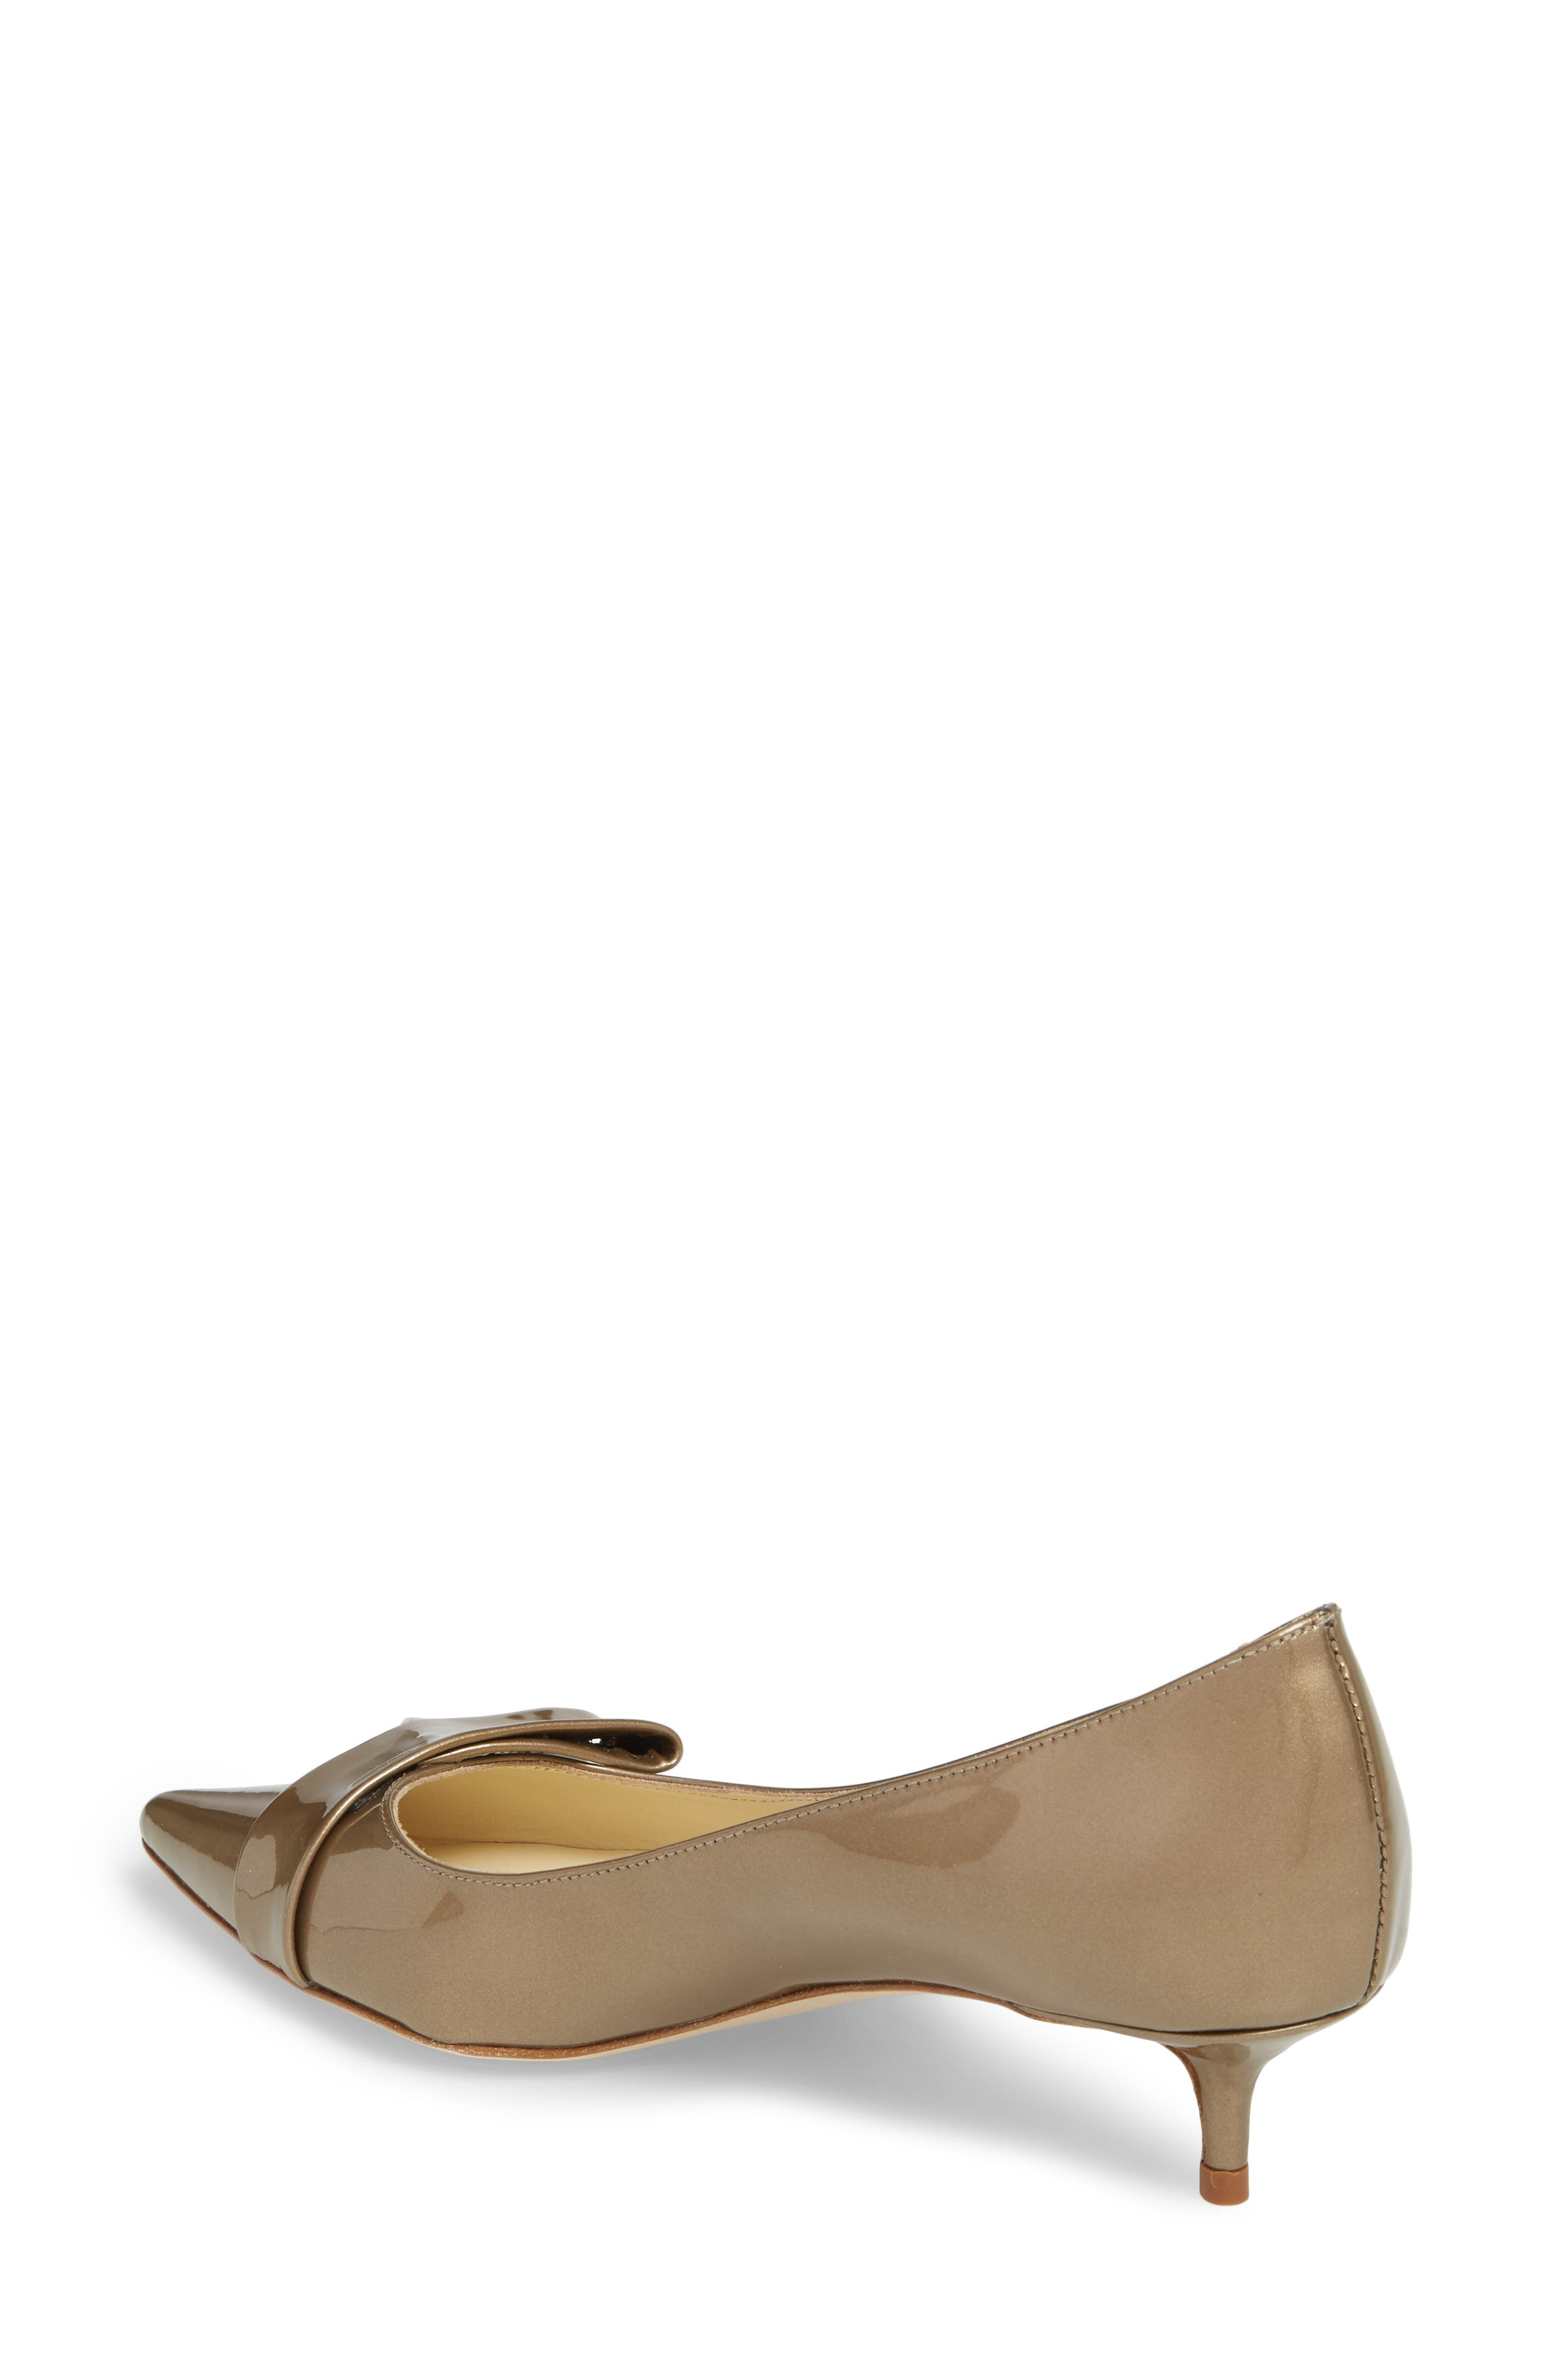 Butter Bliss Pointy Toe Pump,                             Alternate thumbnail 5, color,